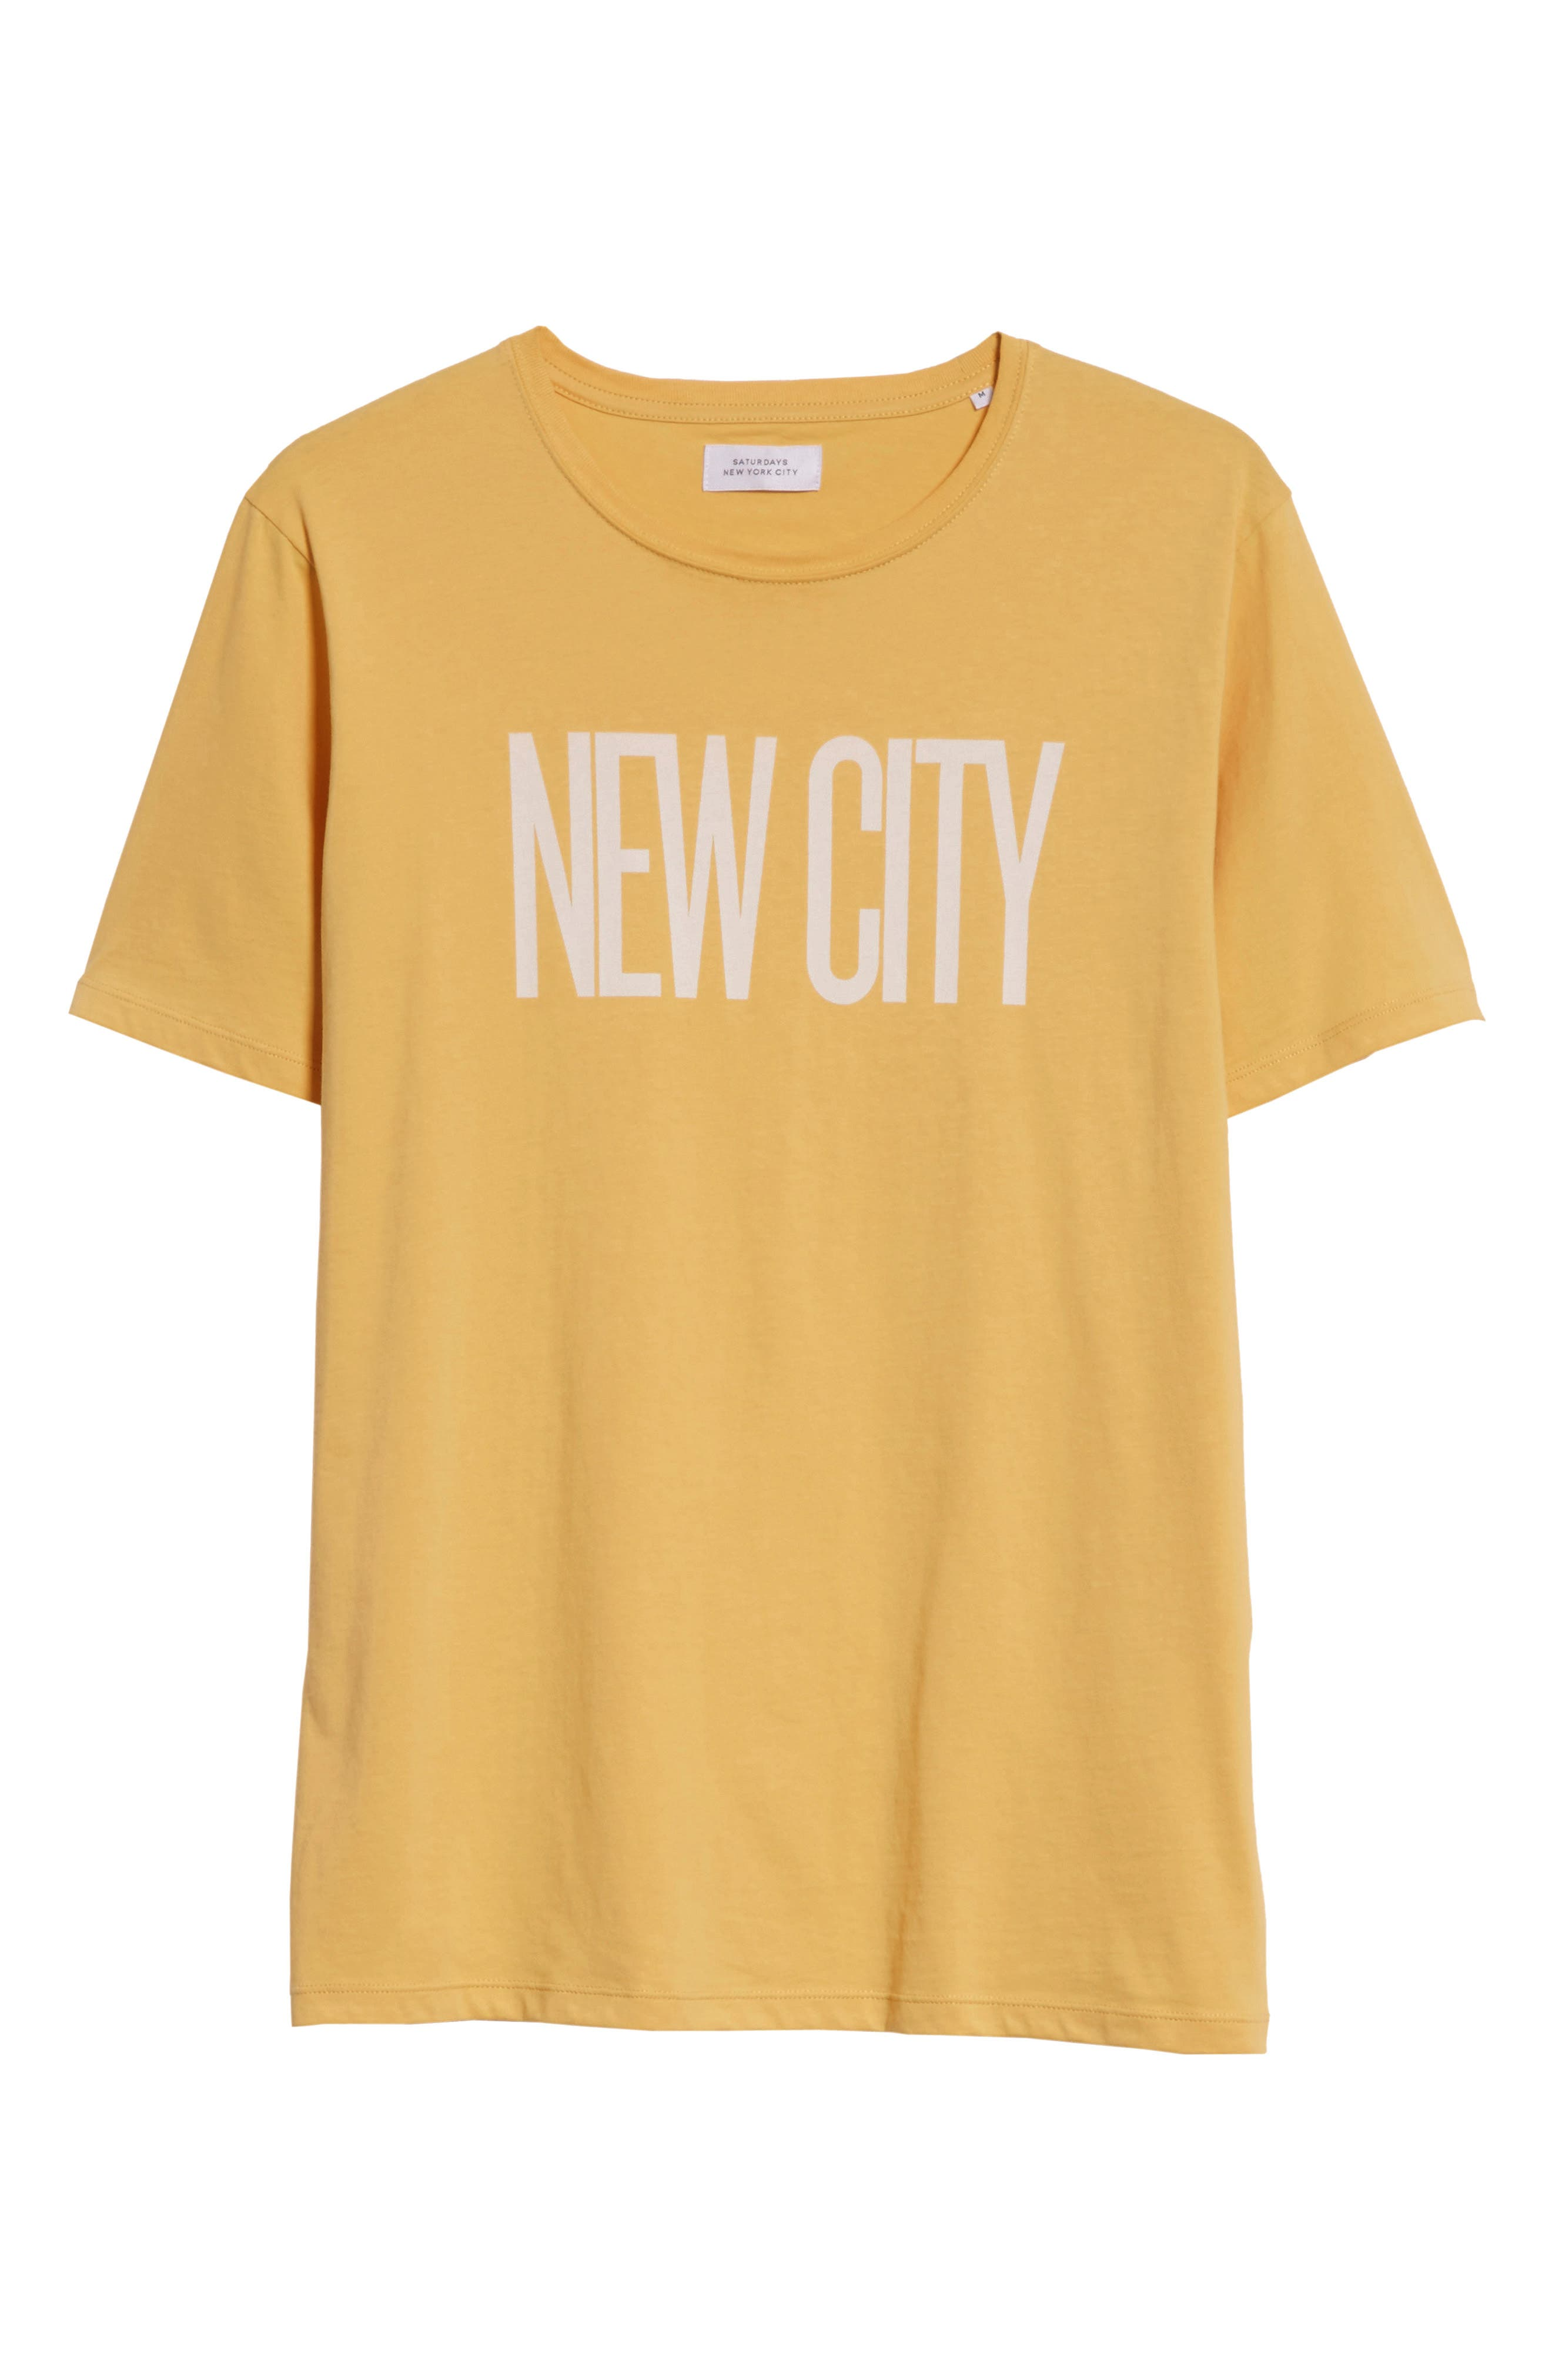 New City Graphic T-Shirt,                             Alternate thumbnail 6, color,                             DUSTY AMBER